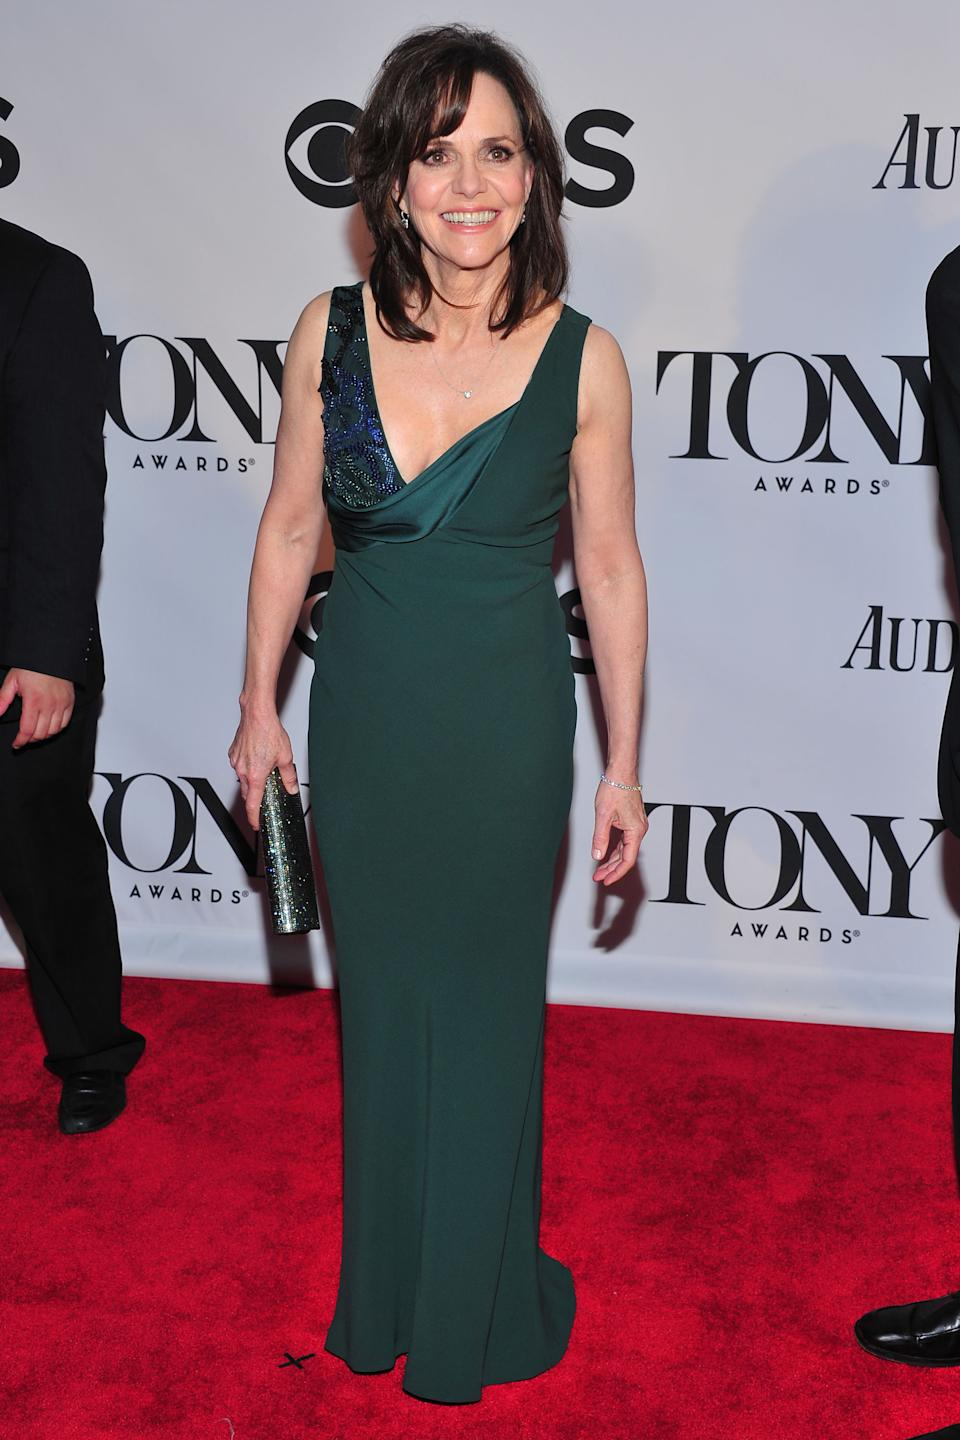 Sally Field arrives on the red carpet at the 67th Annual Tony Awards, on Sunday, June 9, 2013 in New York. (Photo by Charles Sykes/Invision/AP)